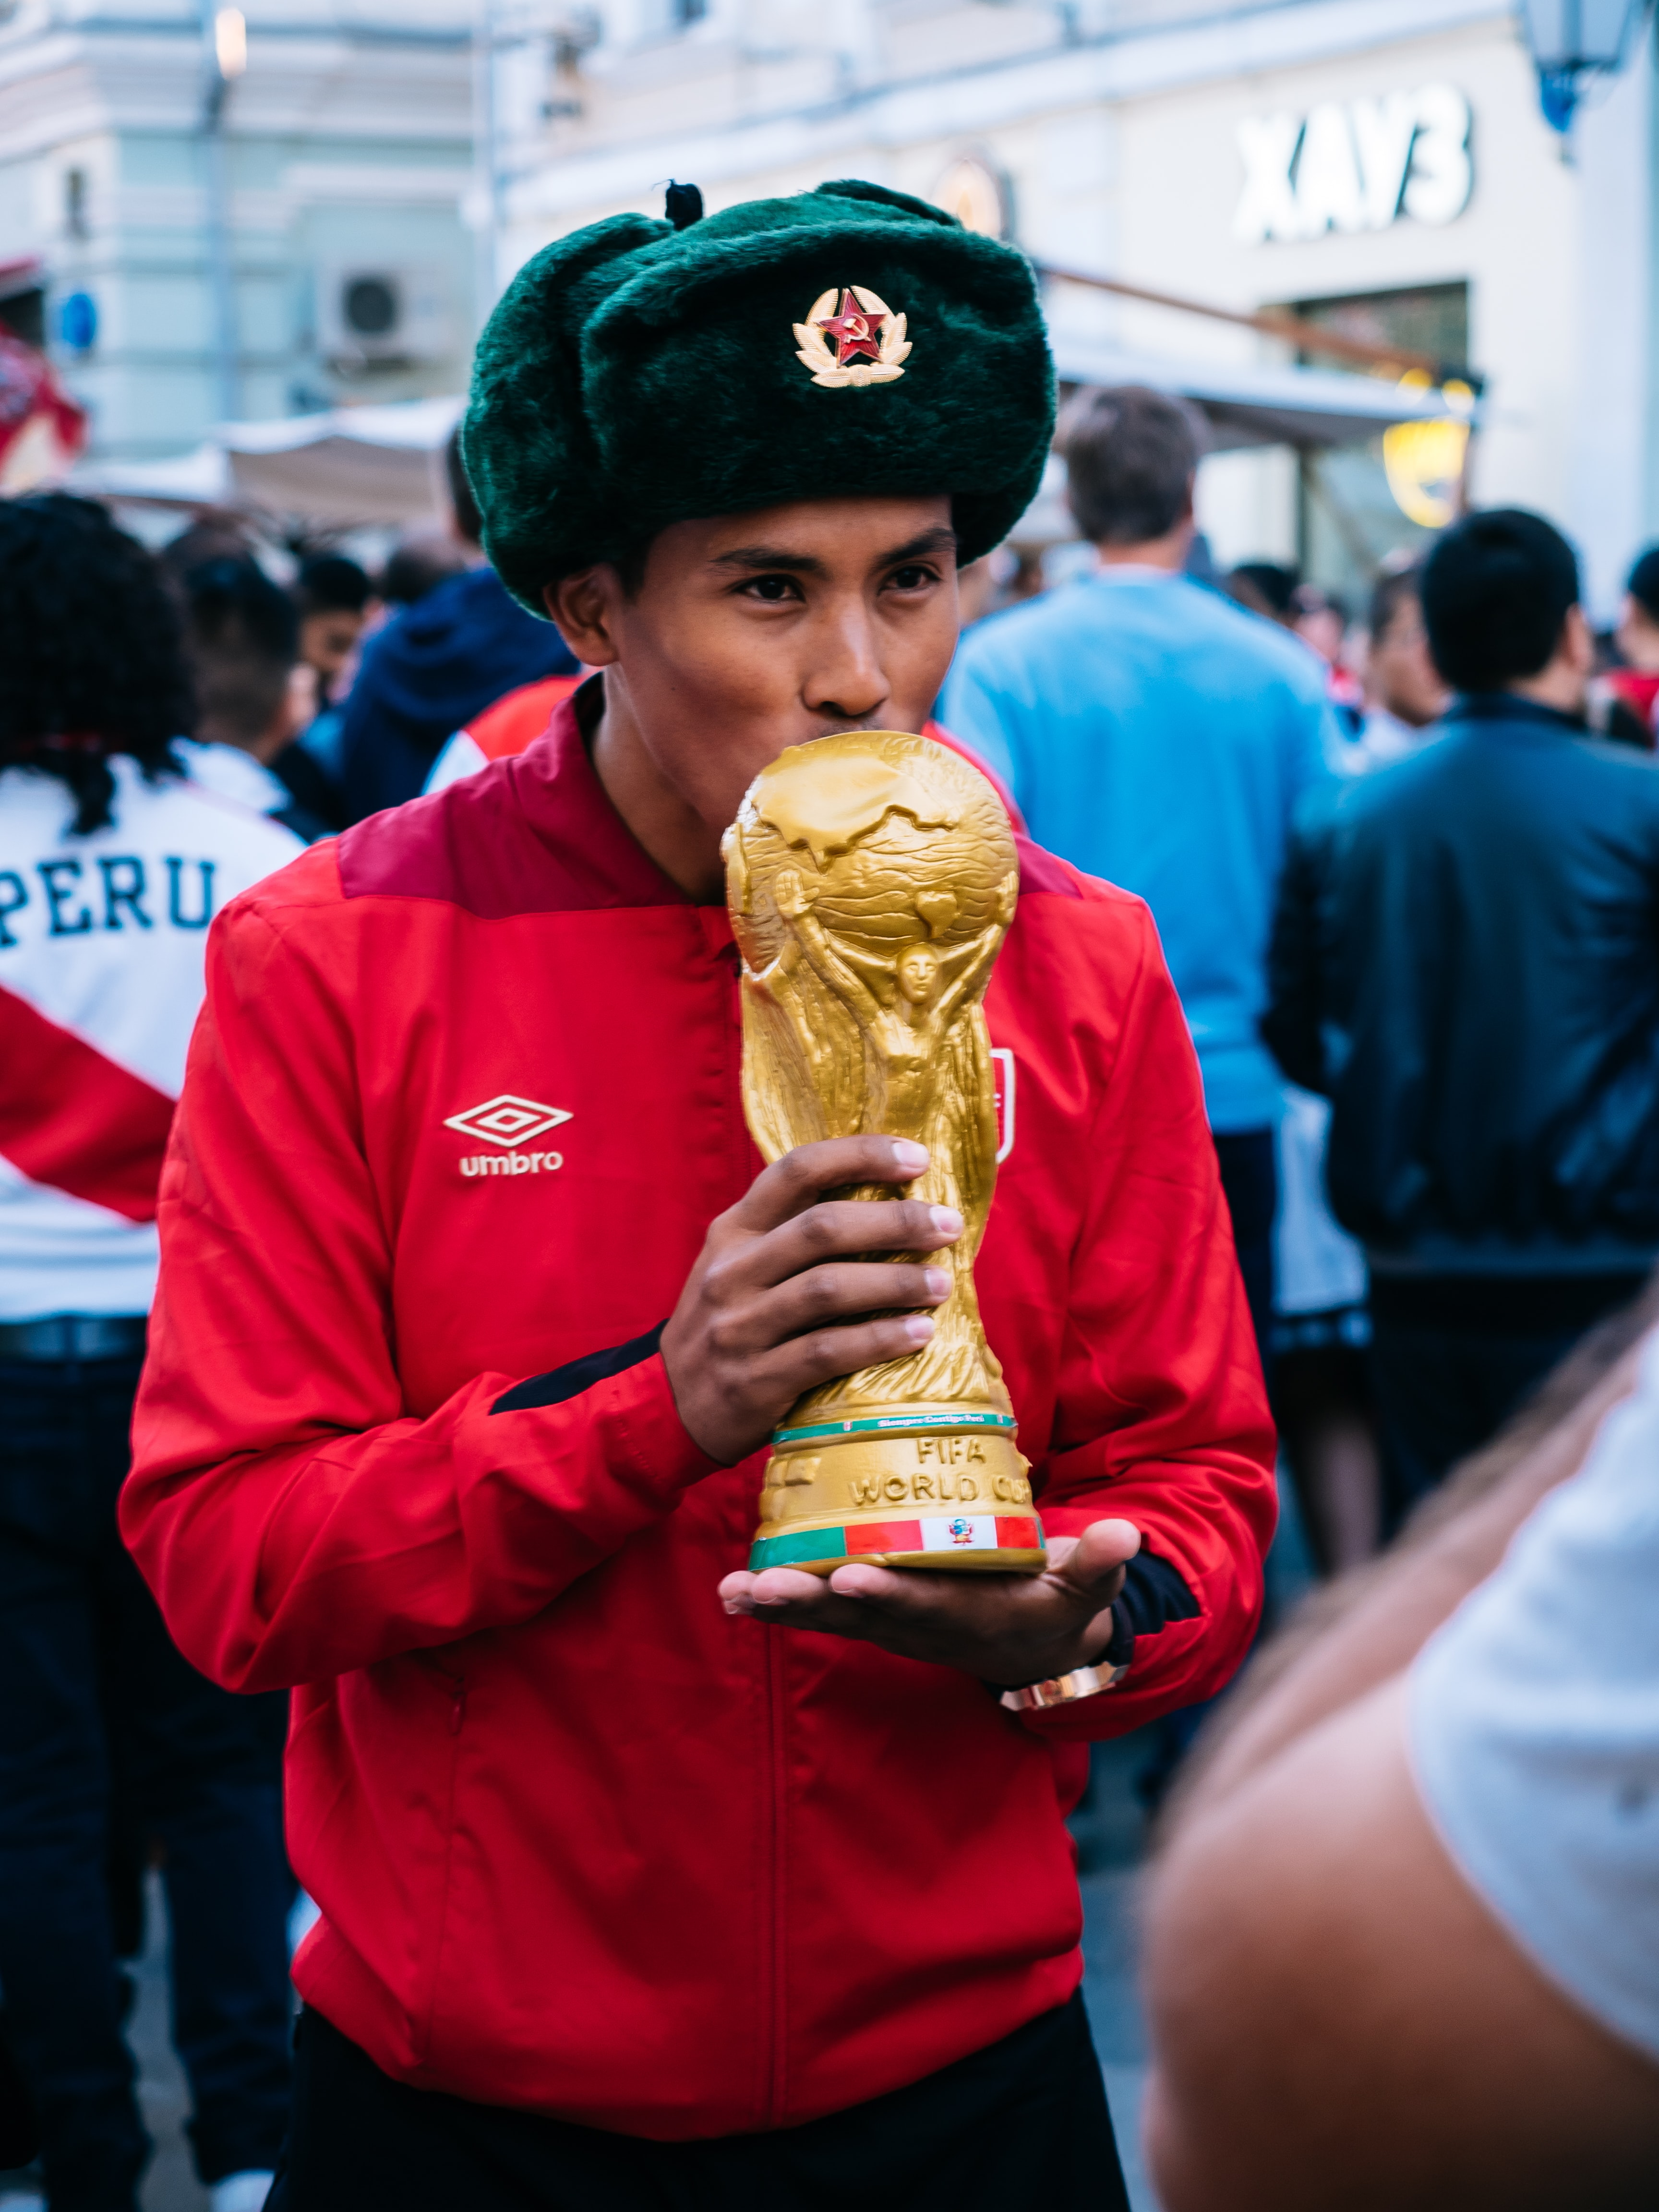 man holding FIFA World Cup trophy